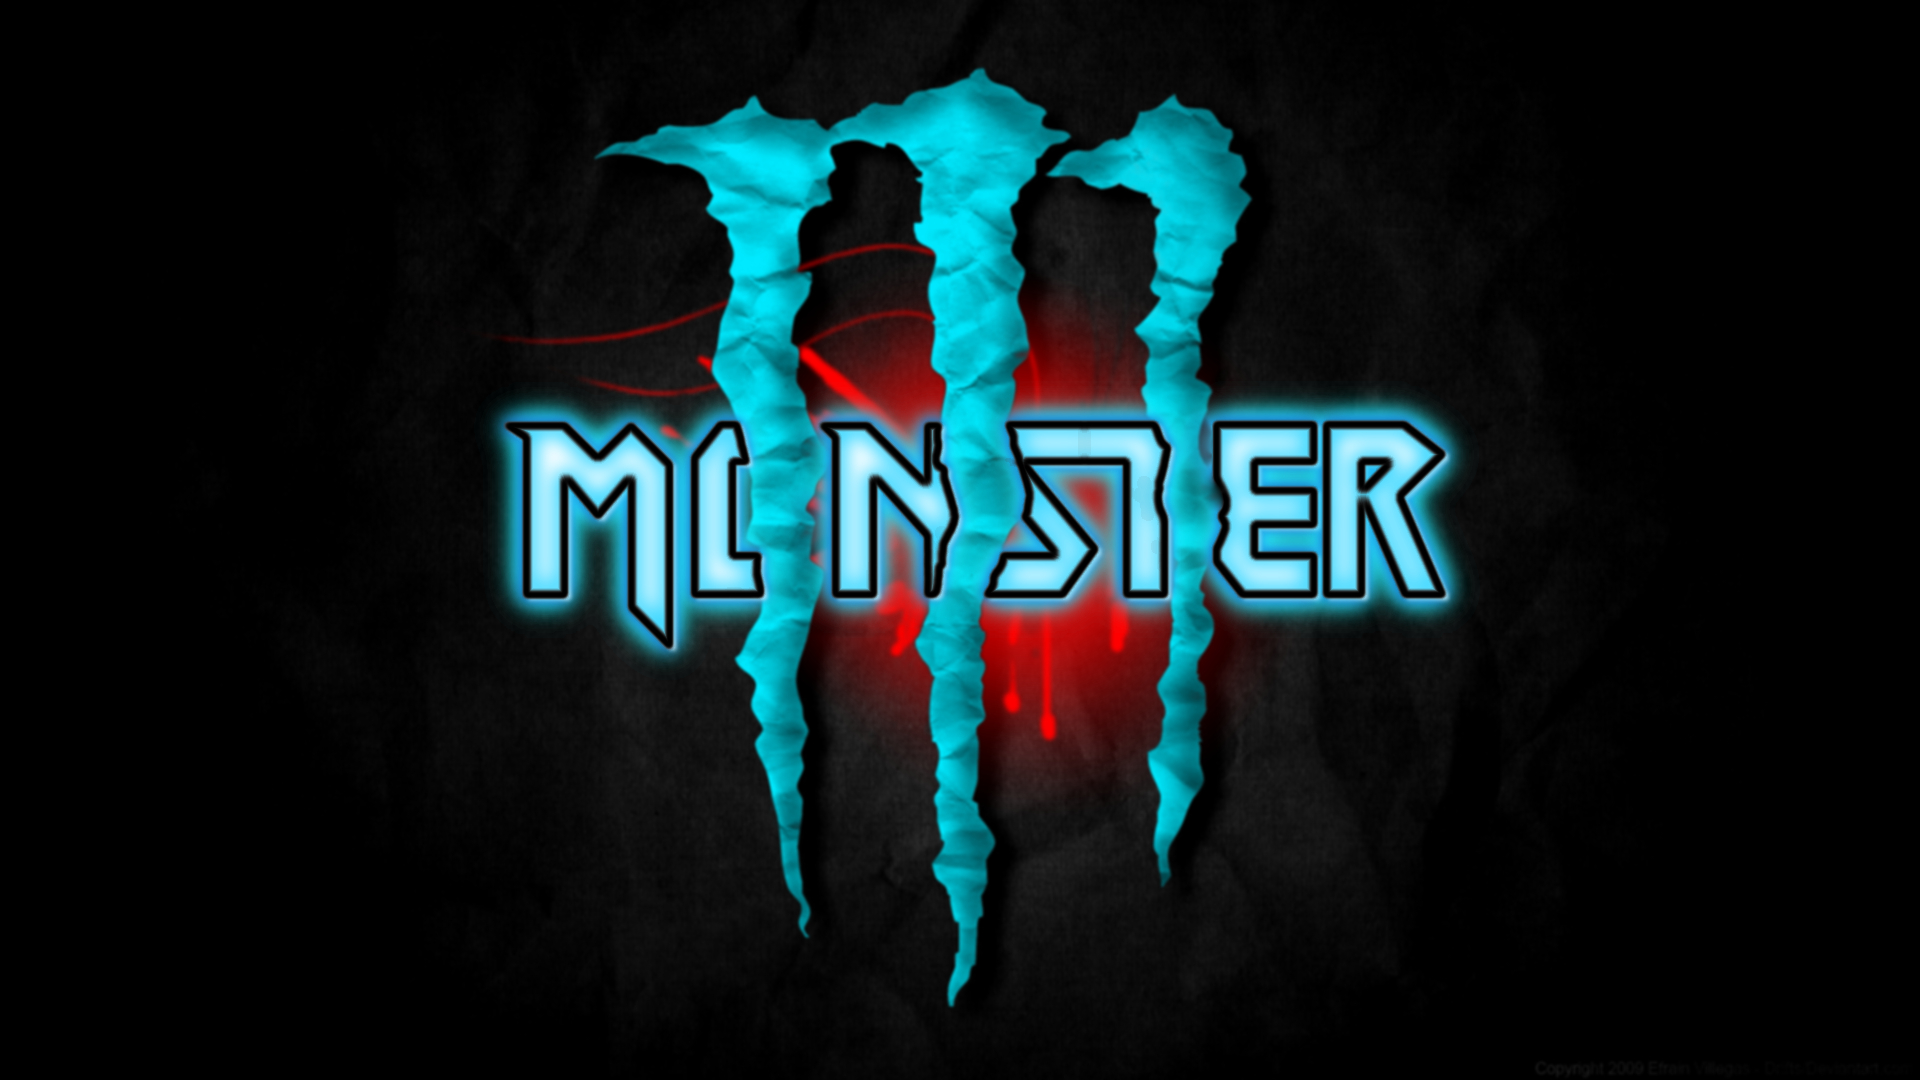 Monster full hd wallpaper and background image 1920x1080 id387506 products monster energy drink wallpaper download voltagebd Images